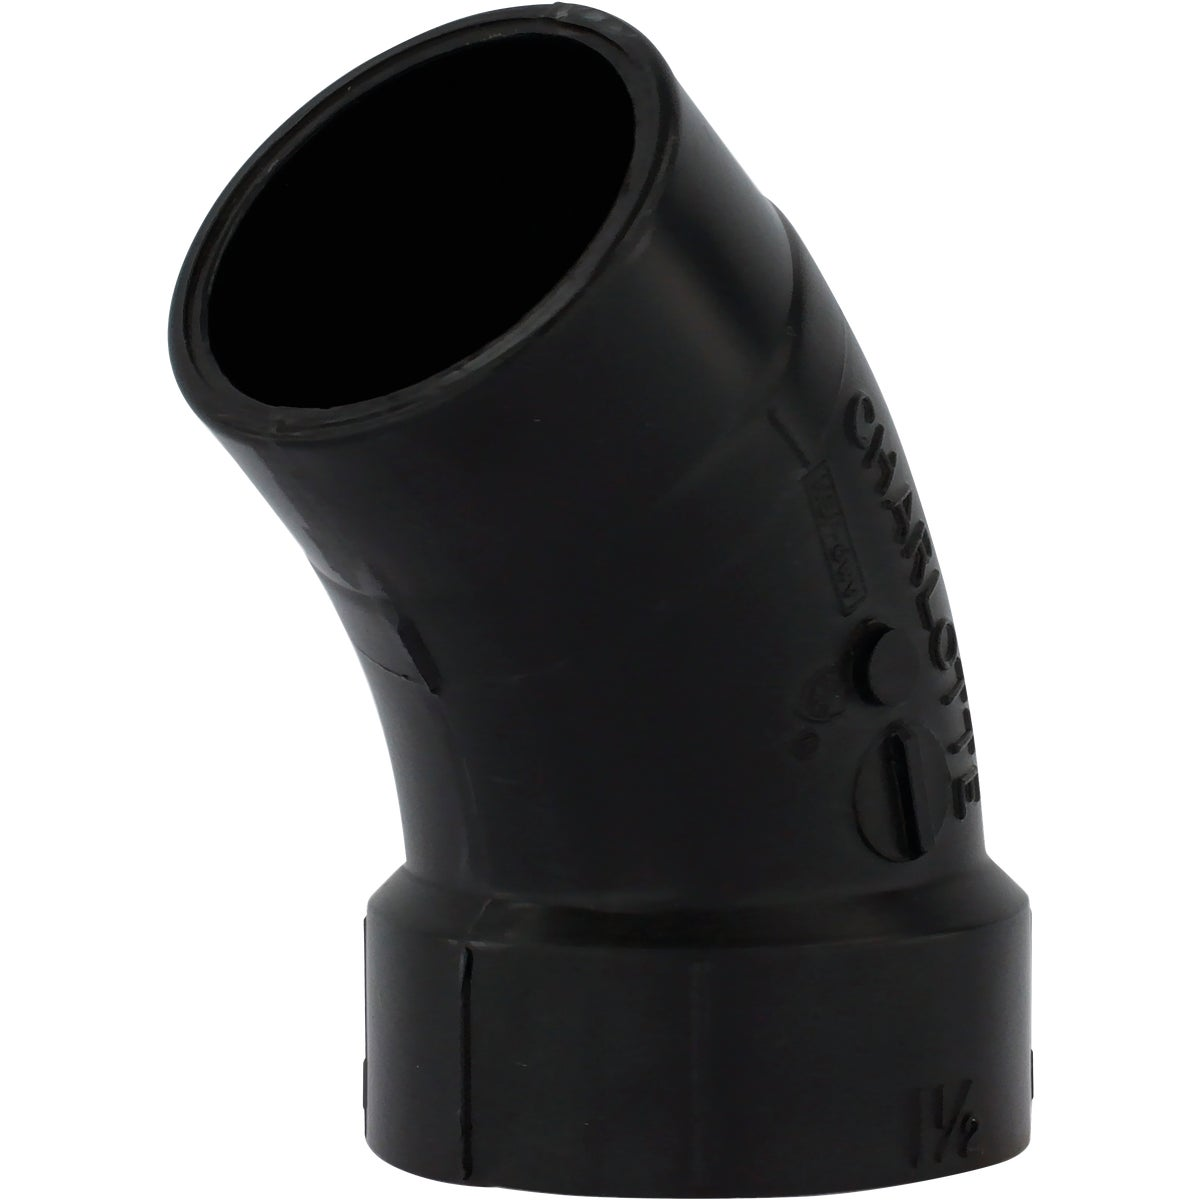 "1-1/2"" 45D ABS STR ELBOW"